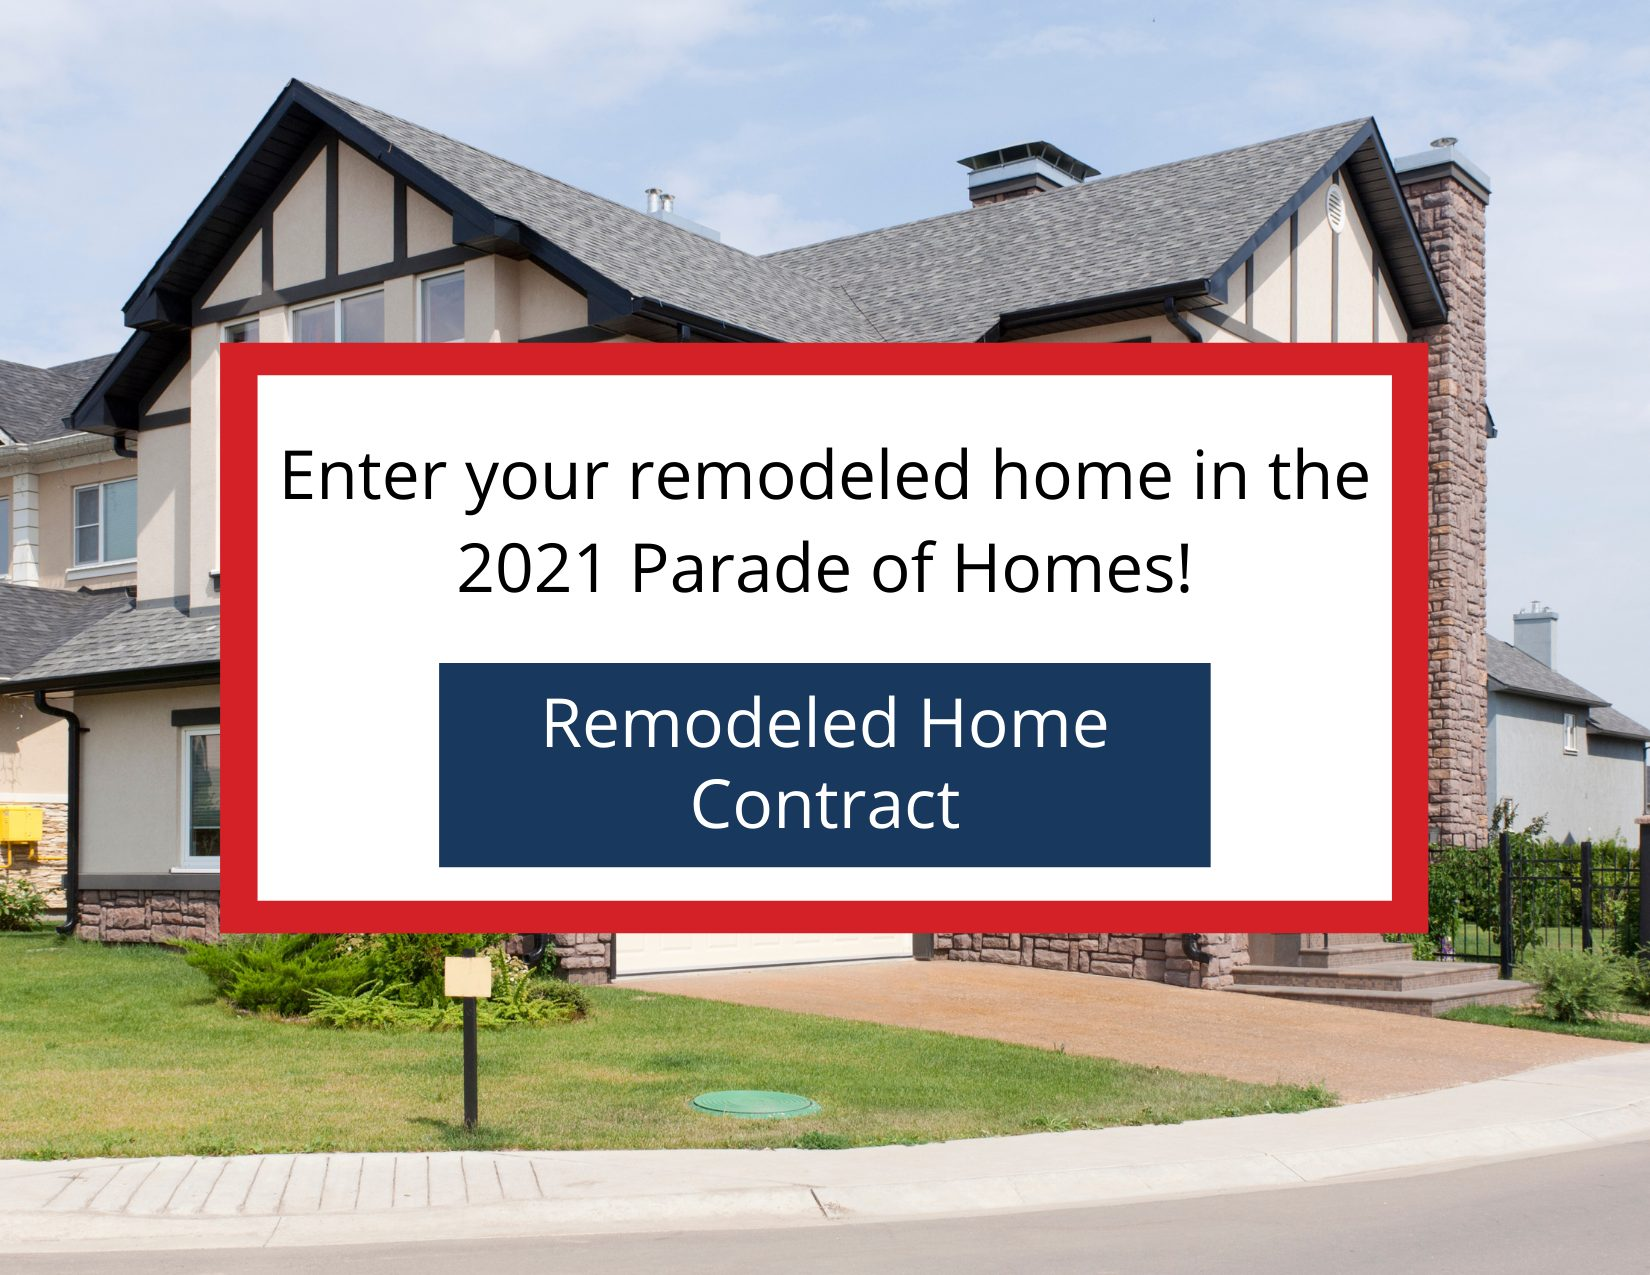 210323 Lrg Remodeled Home Contract Graphic